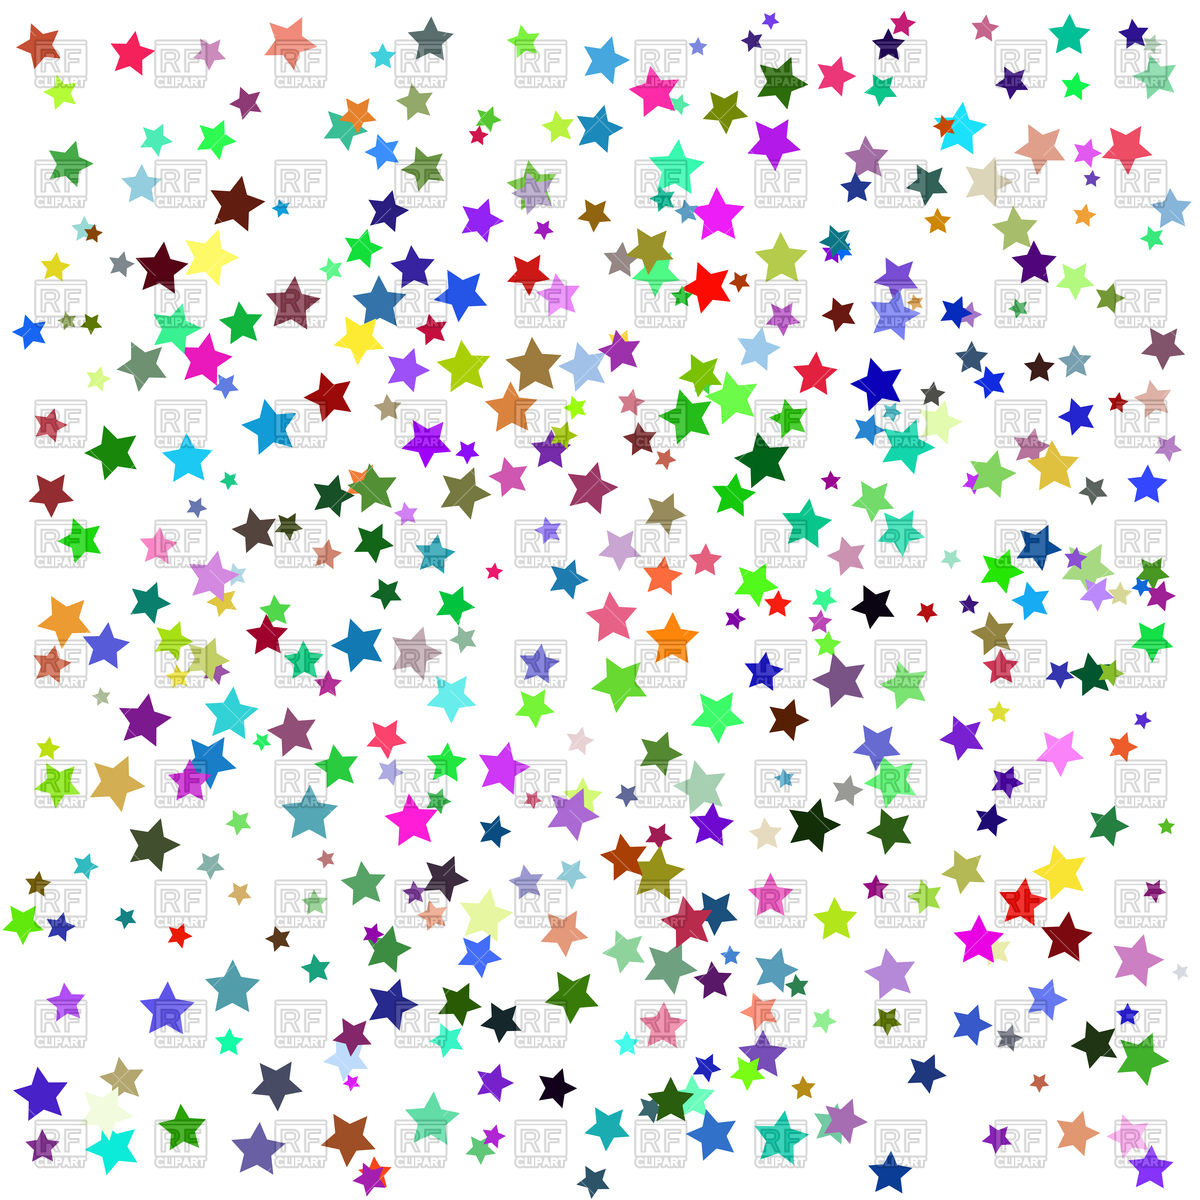 Free Star Background Cliparts, Download Free Clip Art, Free.